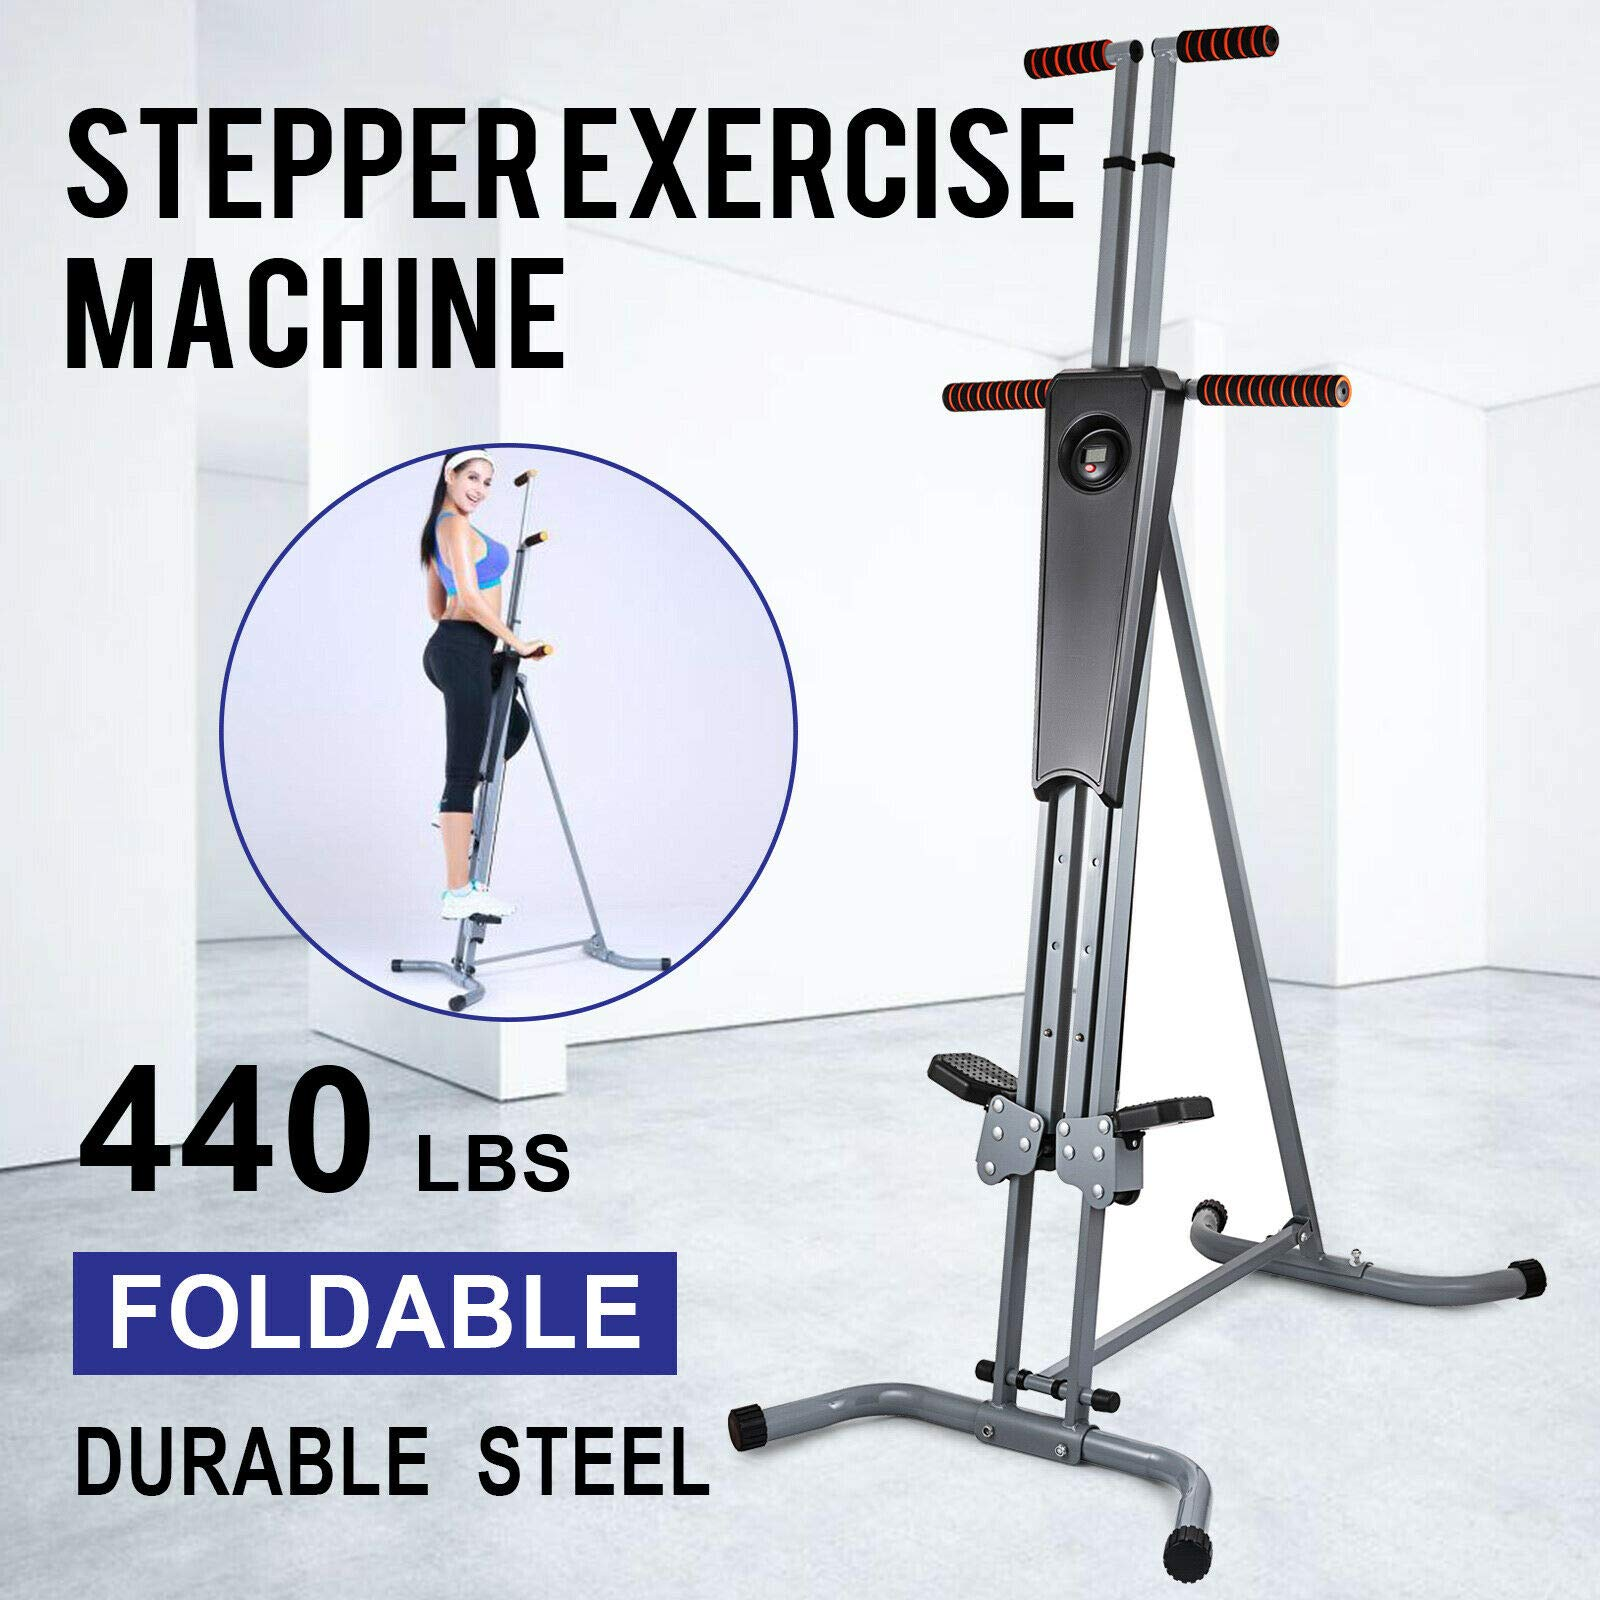 440Lb Sturdy & Durable Exercise Climber Stepper Cardio Climbing Machine LCD Workout Vertical Cardio Lightweight & 5 Levels Adjustable Height Full-Body Workout Machine for Leg Exercise Cardio Workout by Sunnady